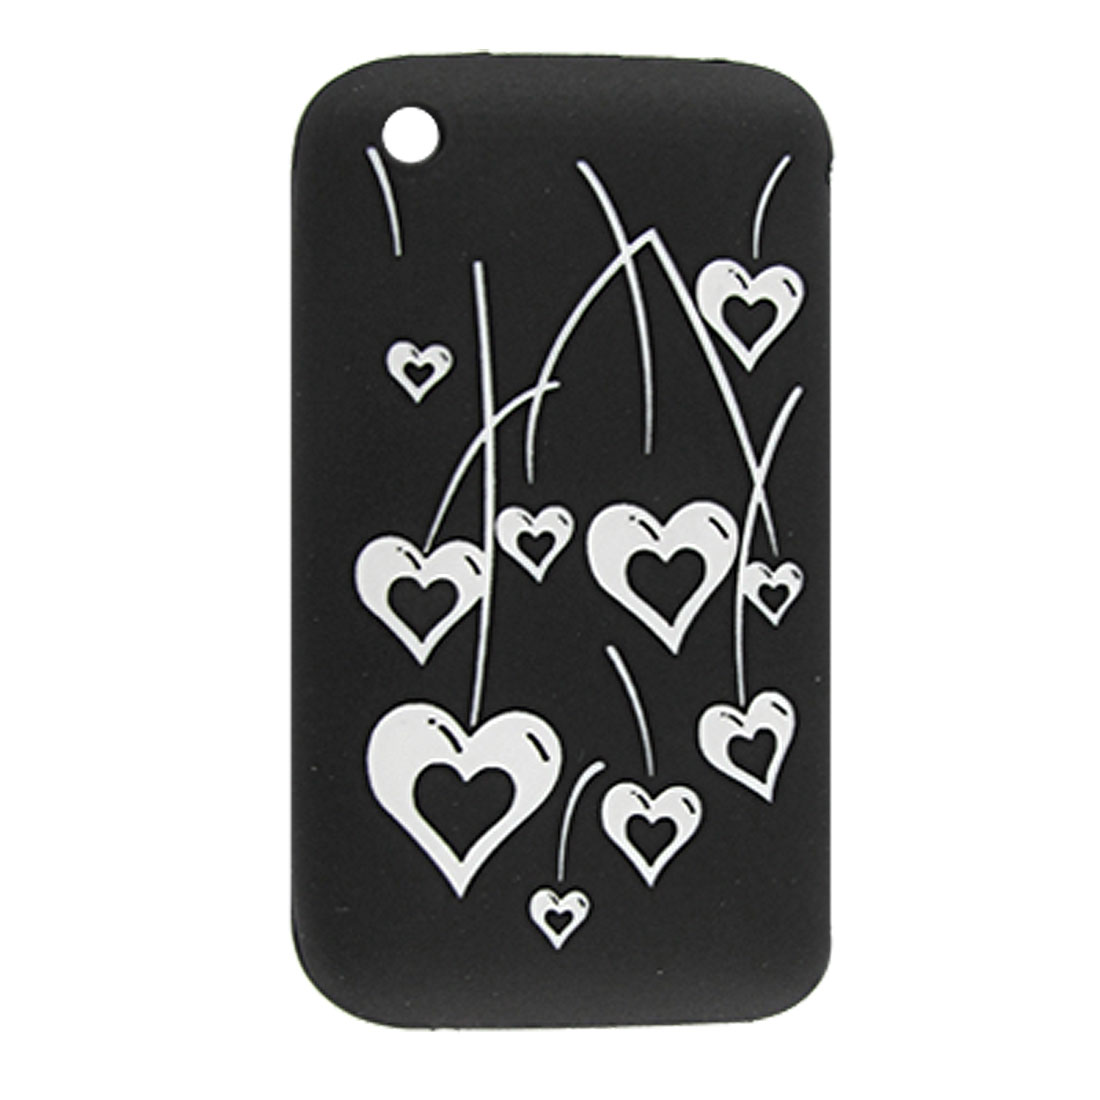 Heart Pattern Black Silicone Skin Cover Case for iPhone 3G